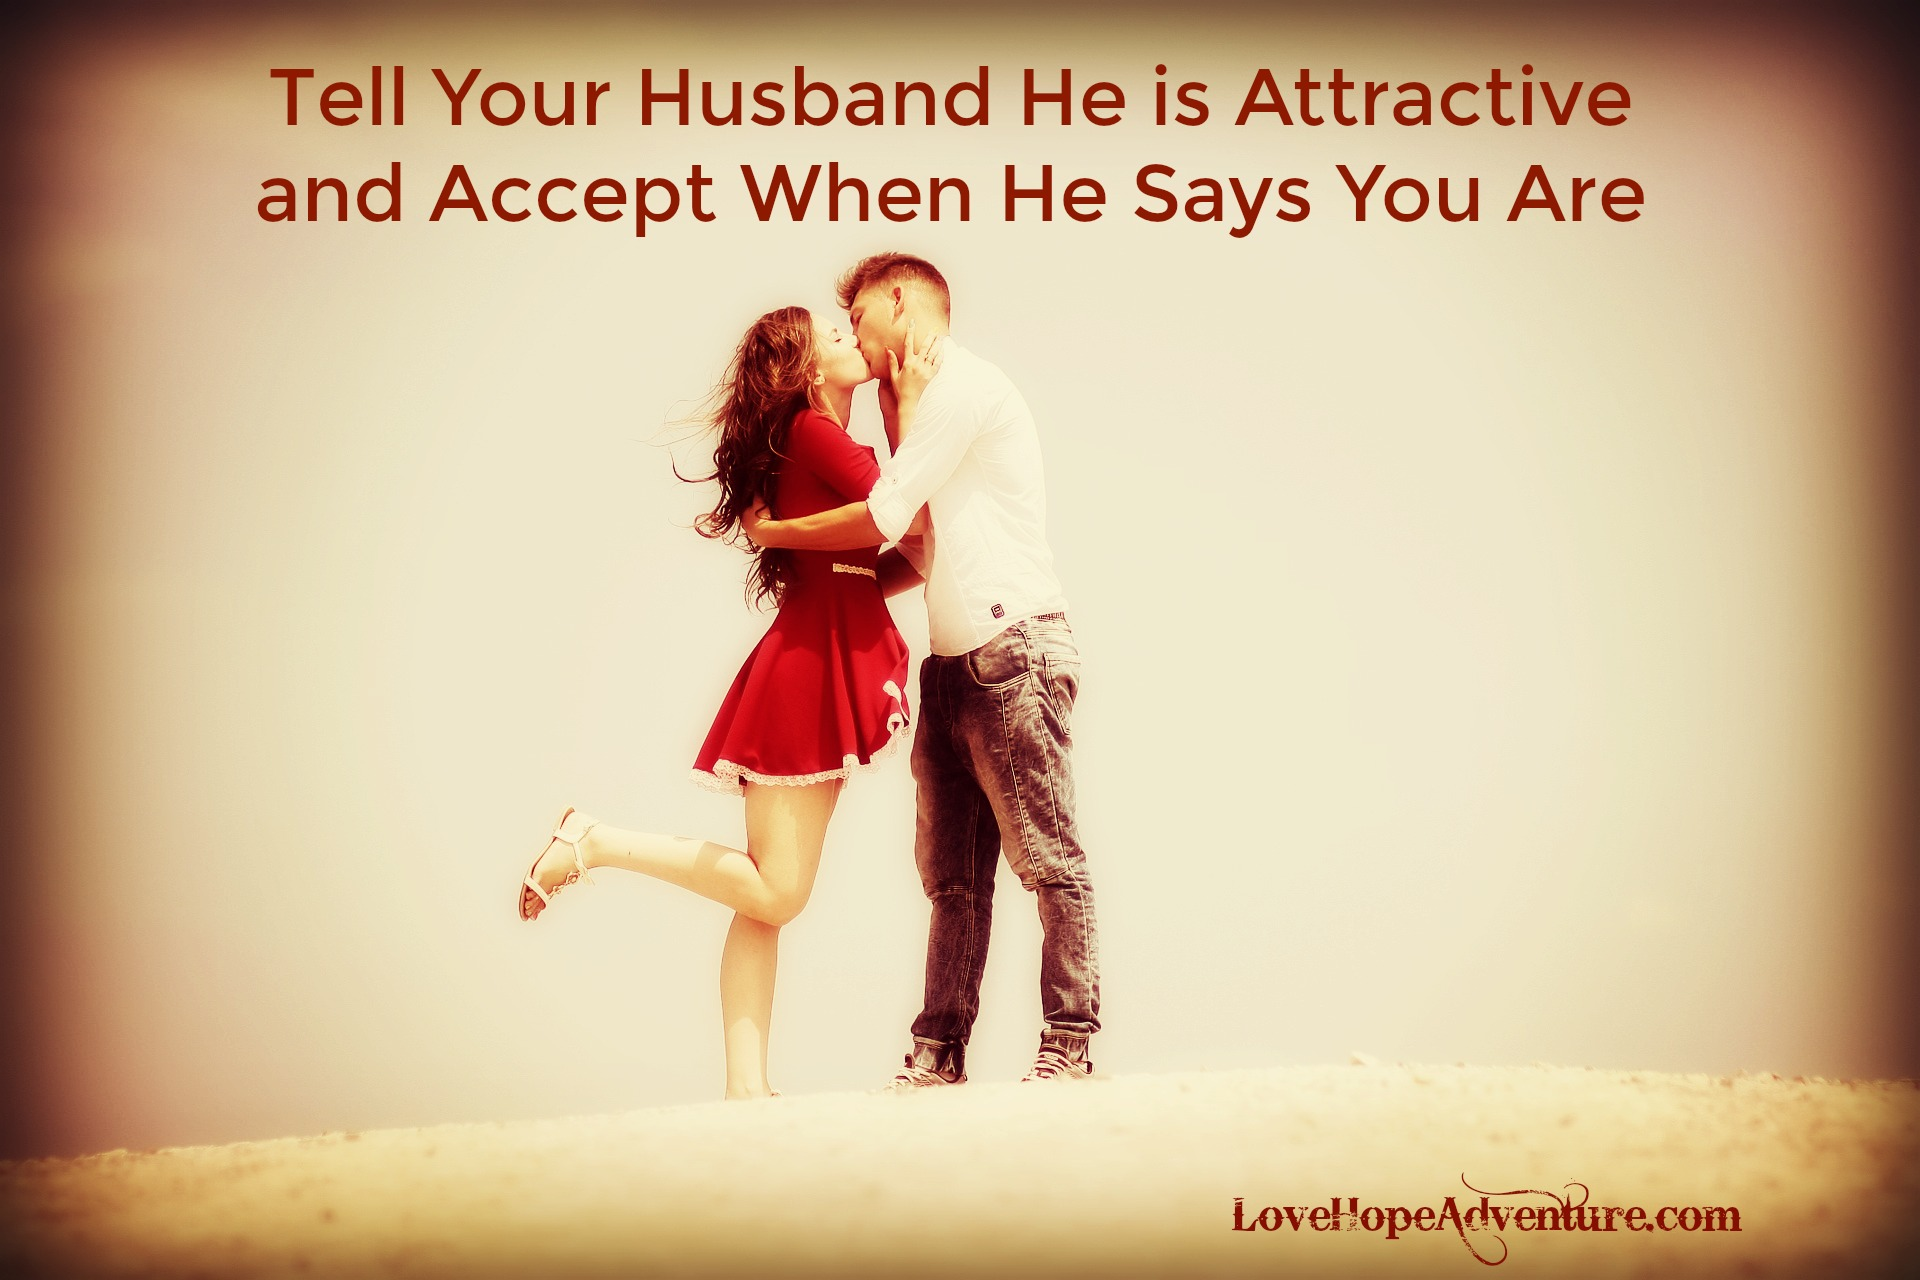 Tell your spouse he is attractive and believe him when he tells you the same